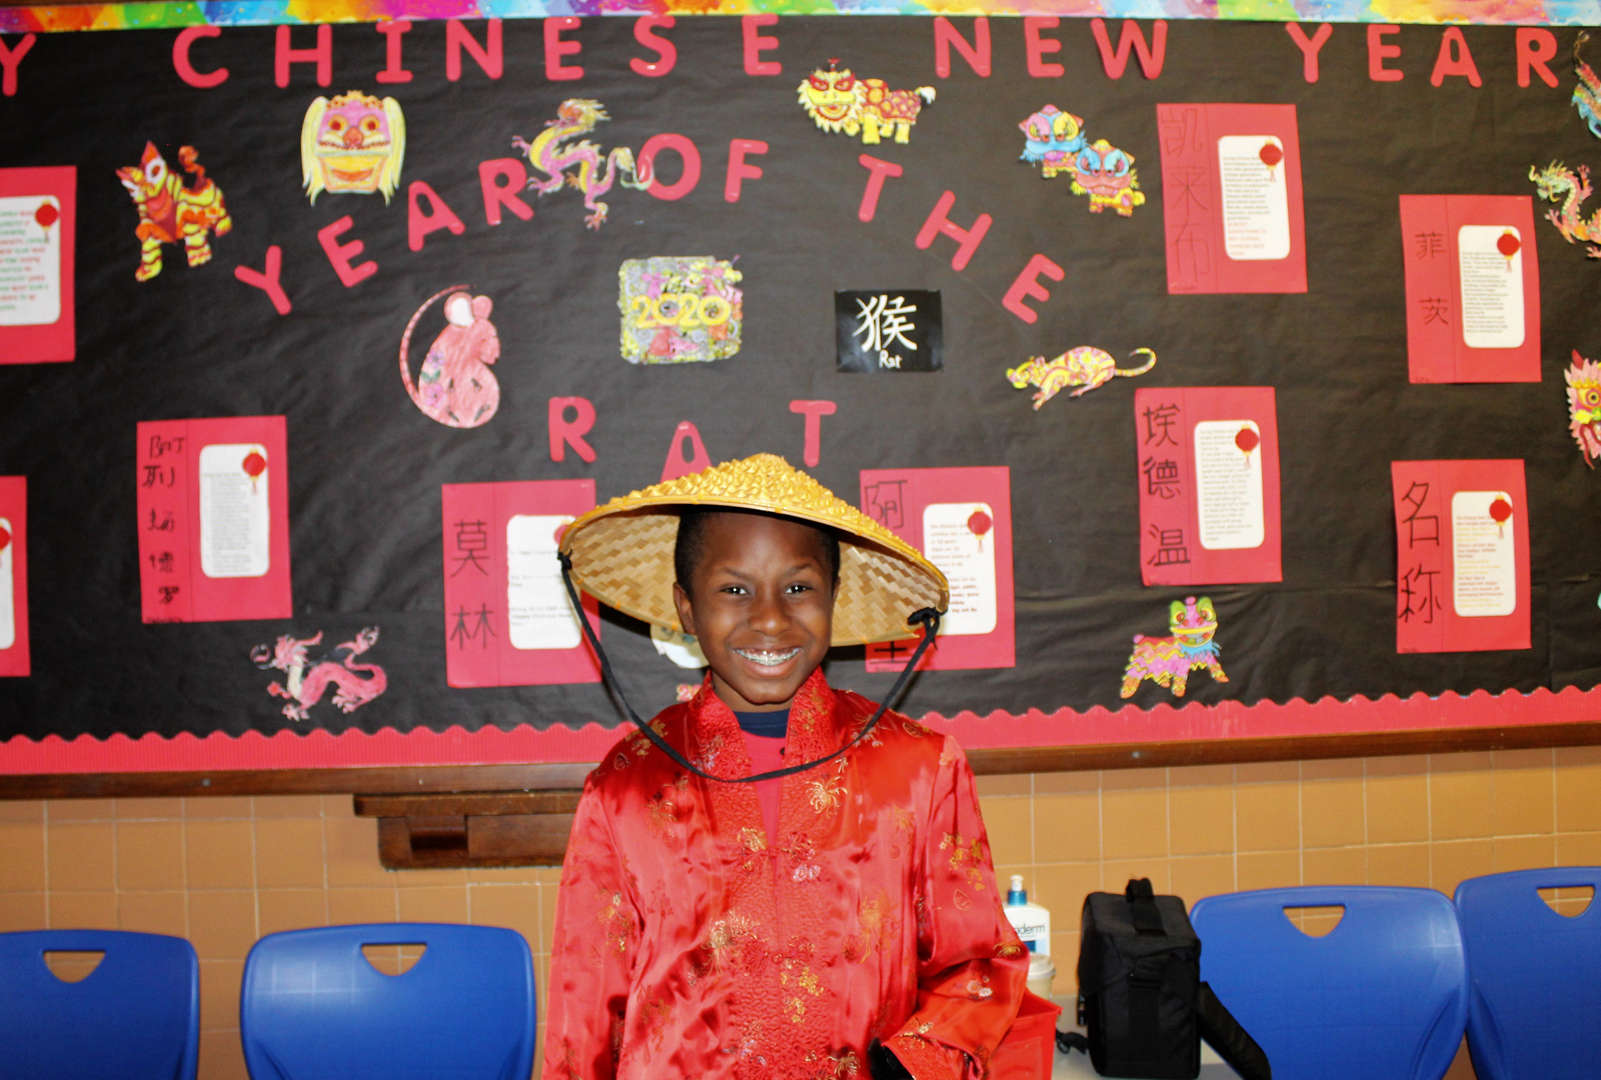 A male student wore a traditional Chinese jacket and bamboo hat for his presentation.